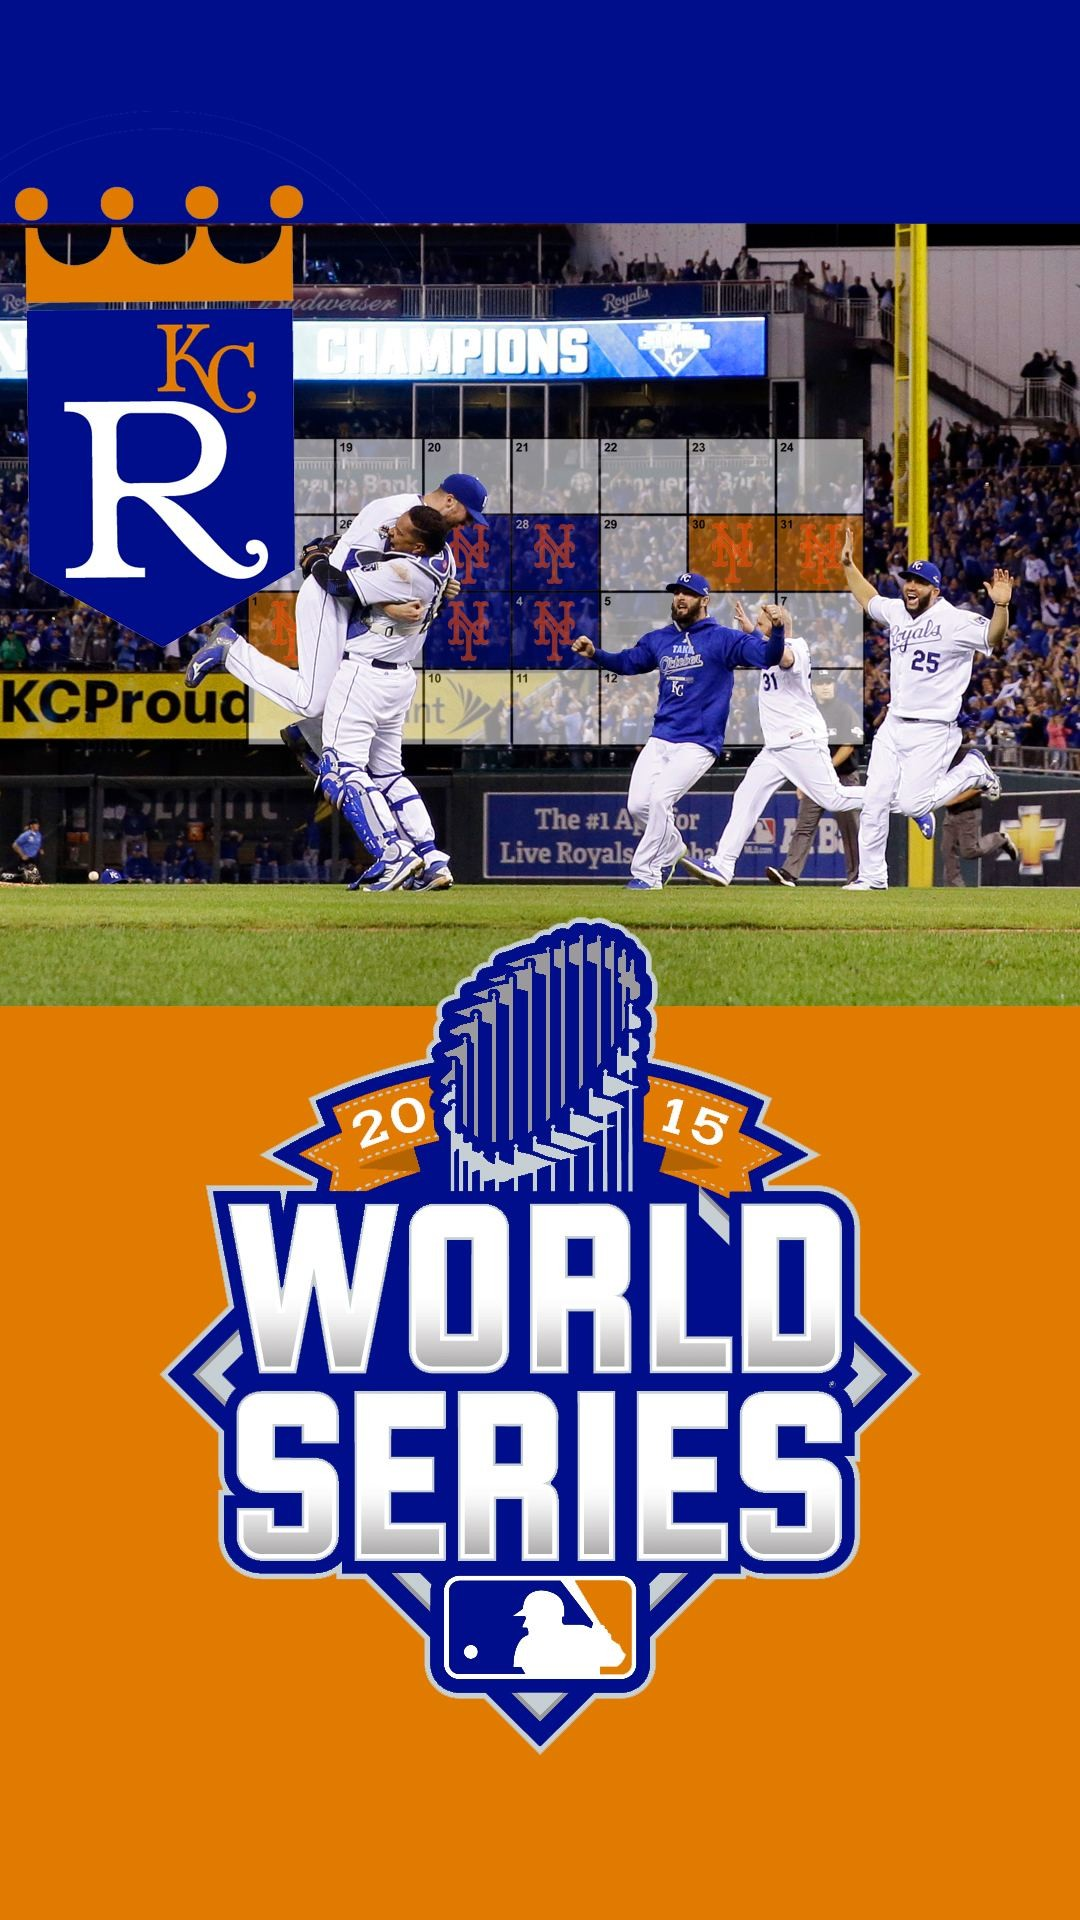 Baseball Wallpaper for Iphone Free Download.